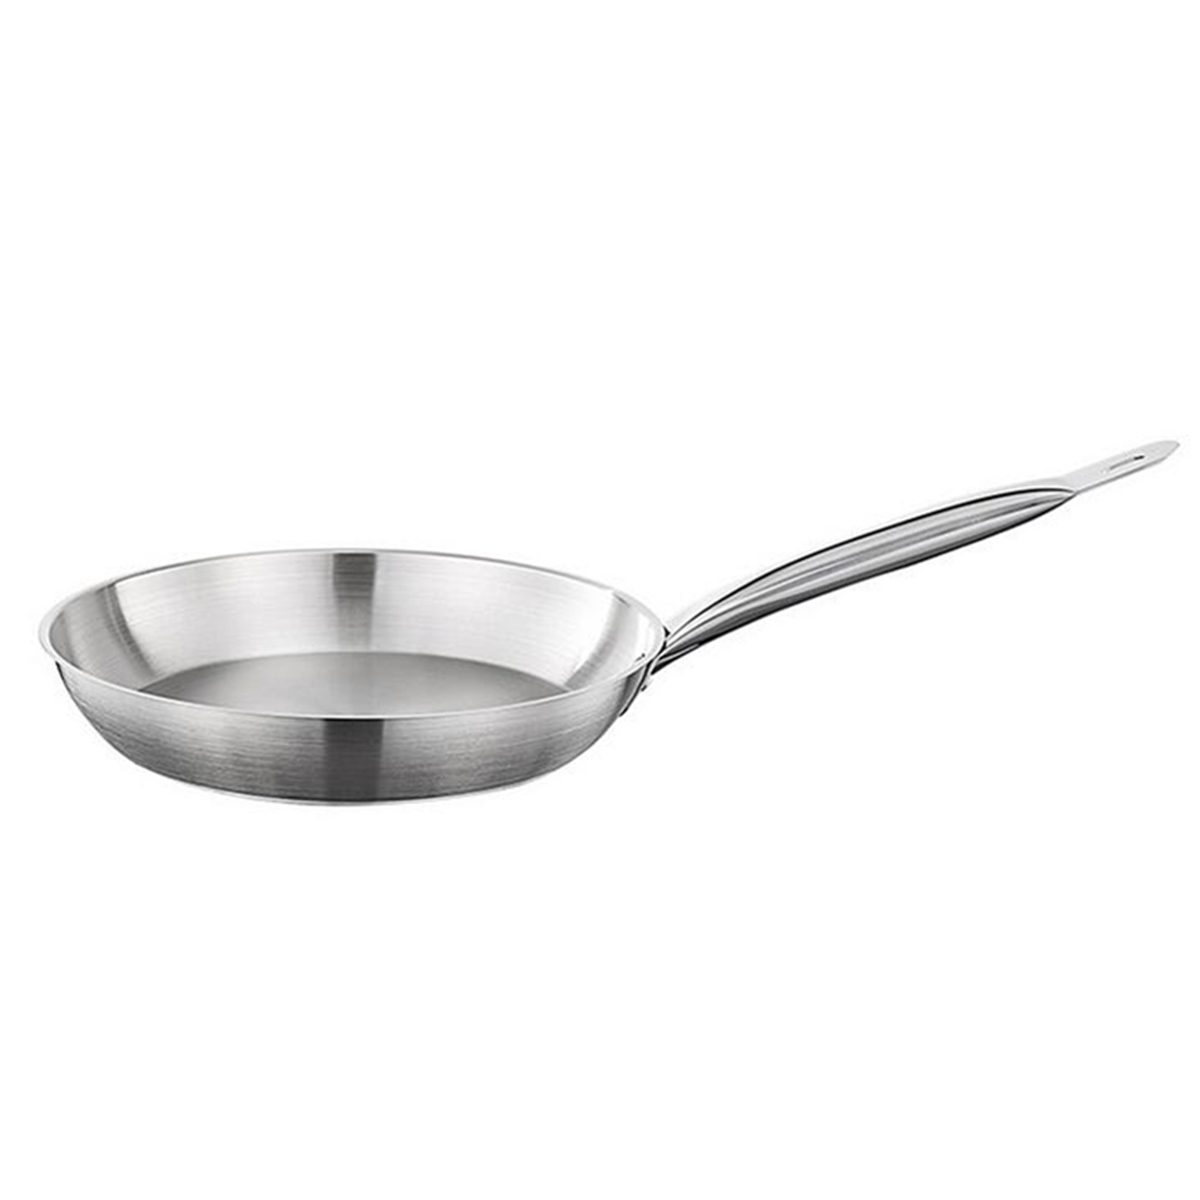 Stainless Steel Cooking Pans Frying Pan Induction cooking Tools Oven Dishwasher safe Kitchen Dining Cookware Tool